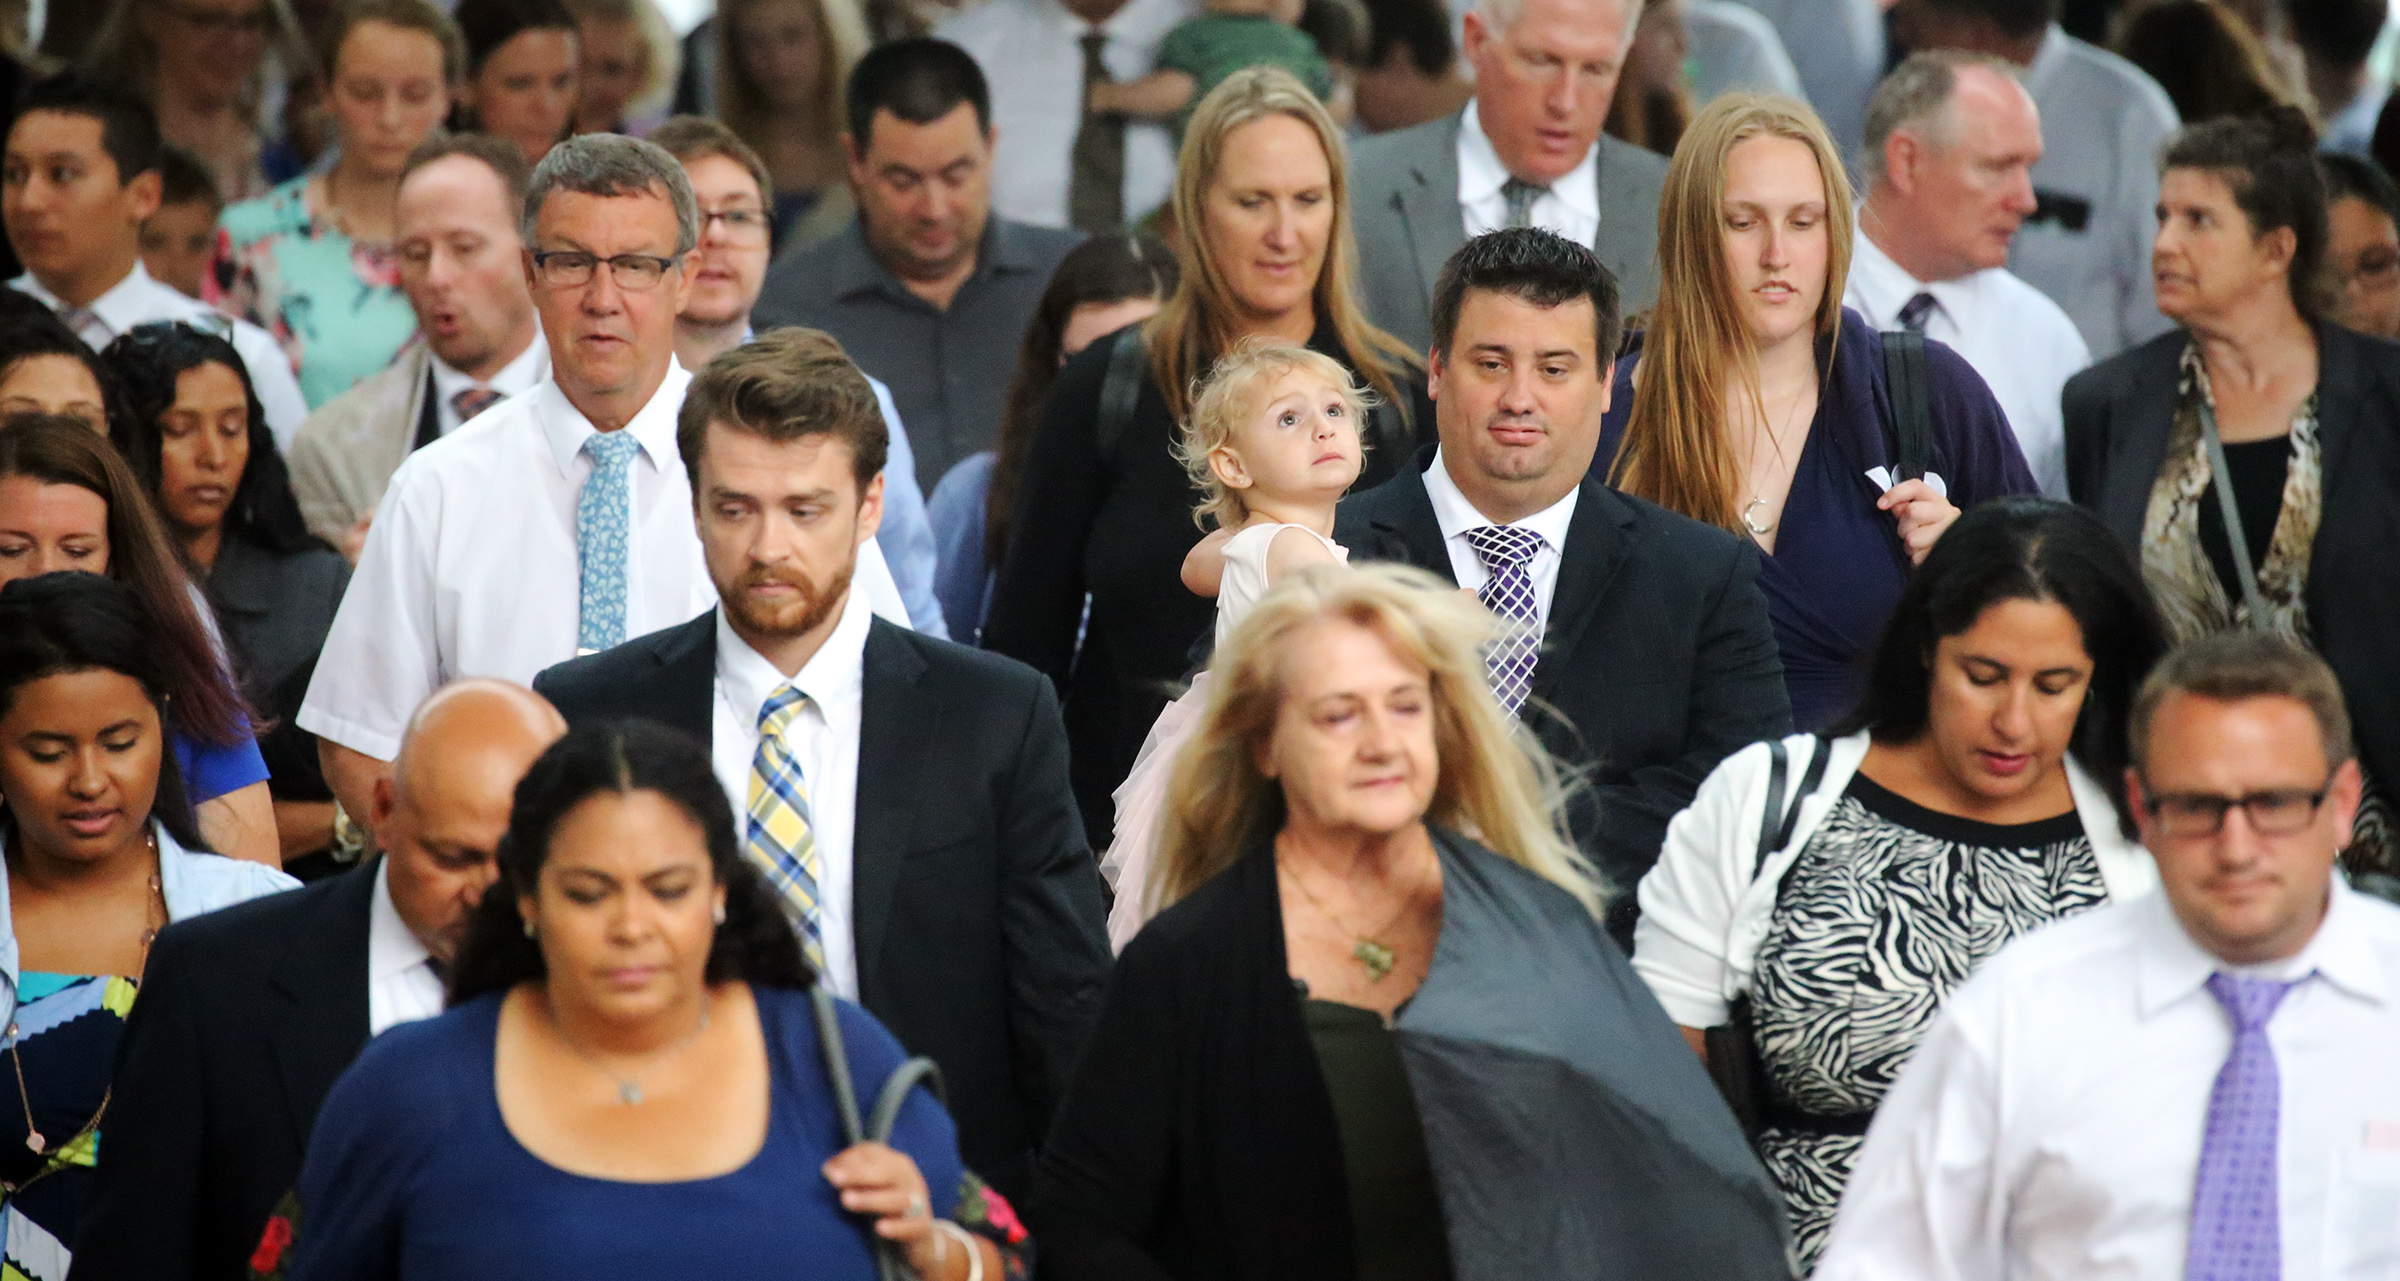 Devotional attendees make their way to listen to President Russell M. Nelson and others speak at the Amway Center on a June 9, 2019, in Orlando, Florida.